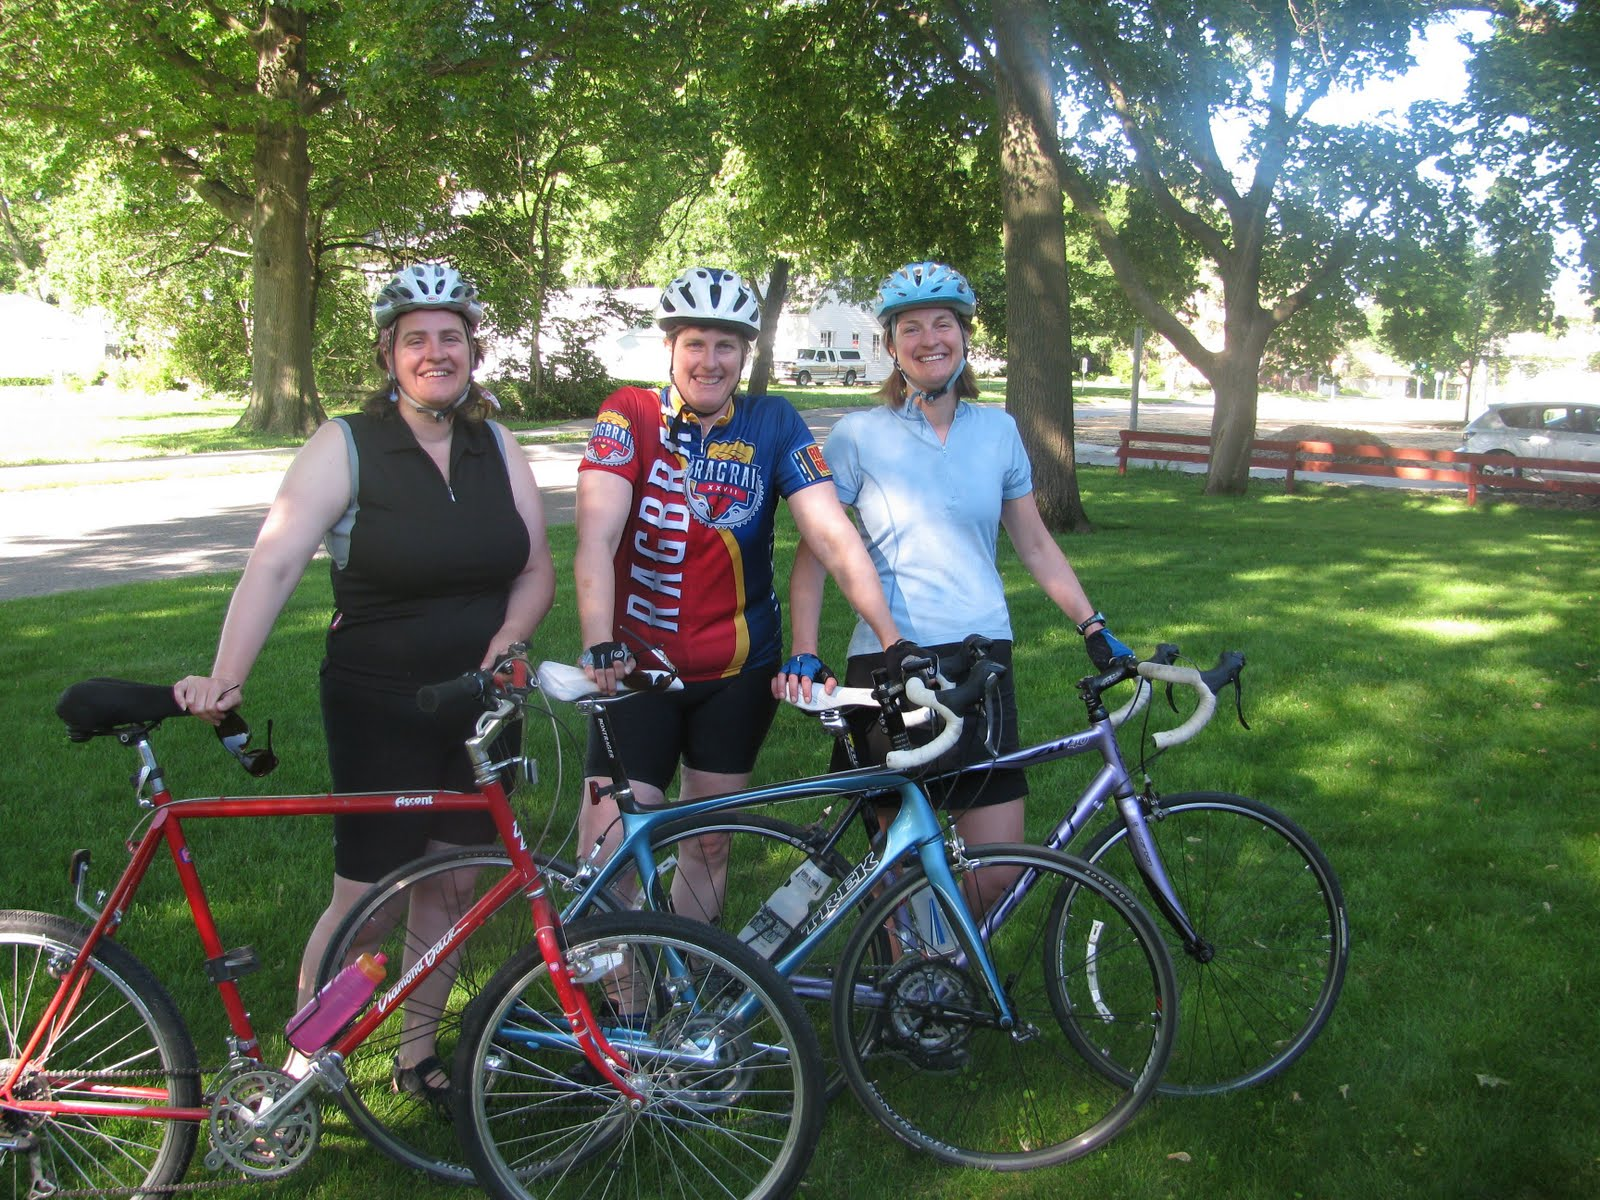 Bikes Dealers In Pella Iowa families with bike